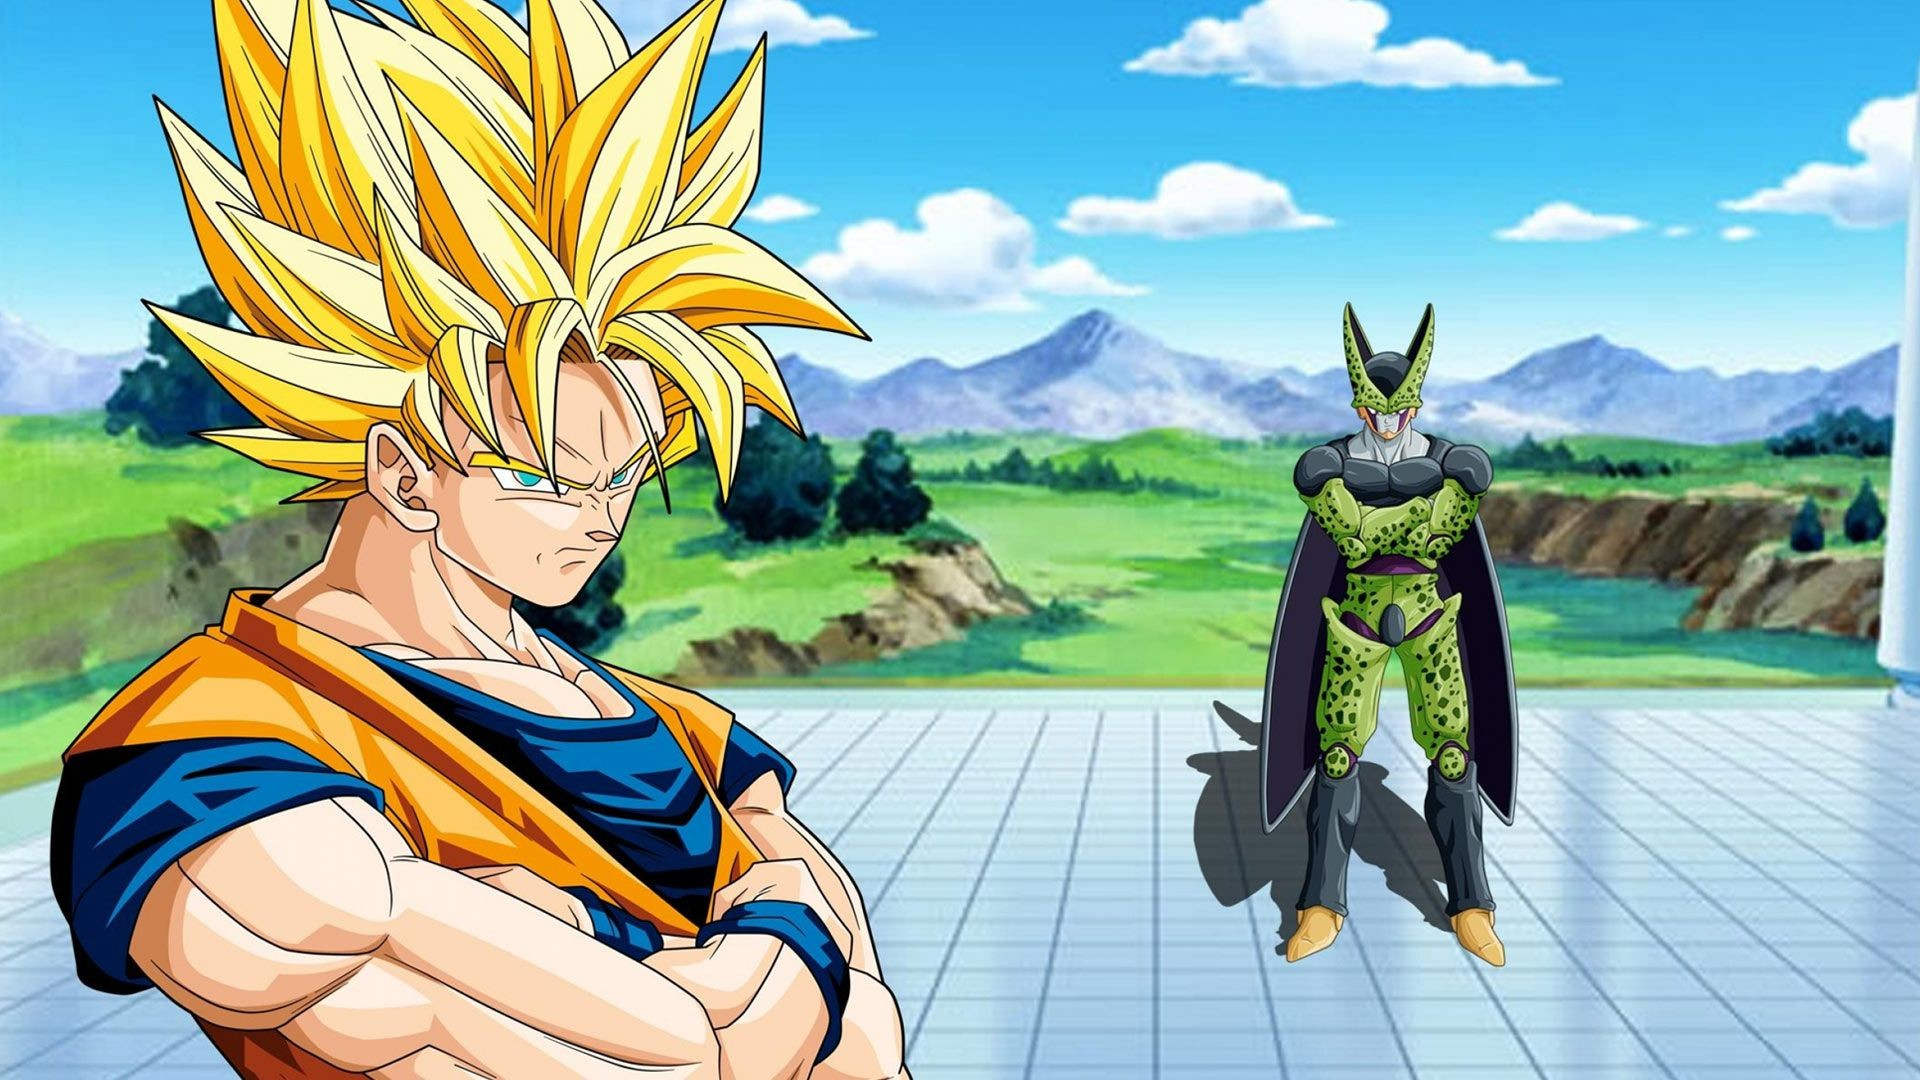 1920x1080 Dragon Ball Z Hd Wallpaper PIC MCH060704